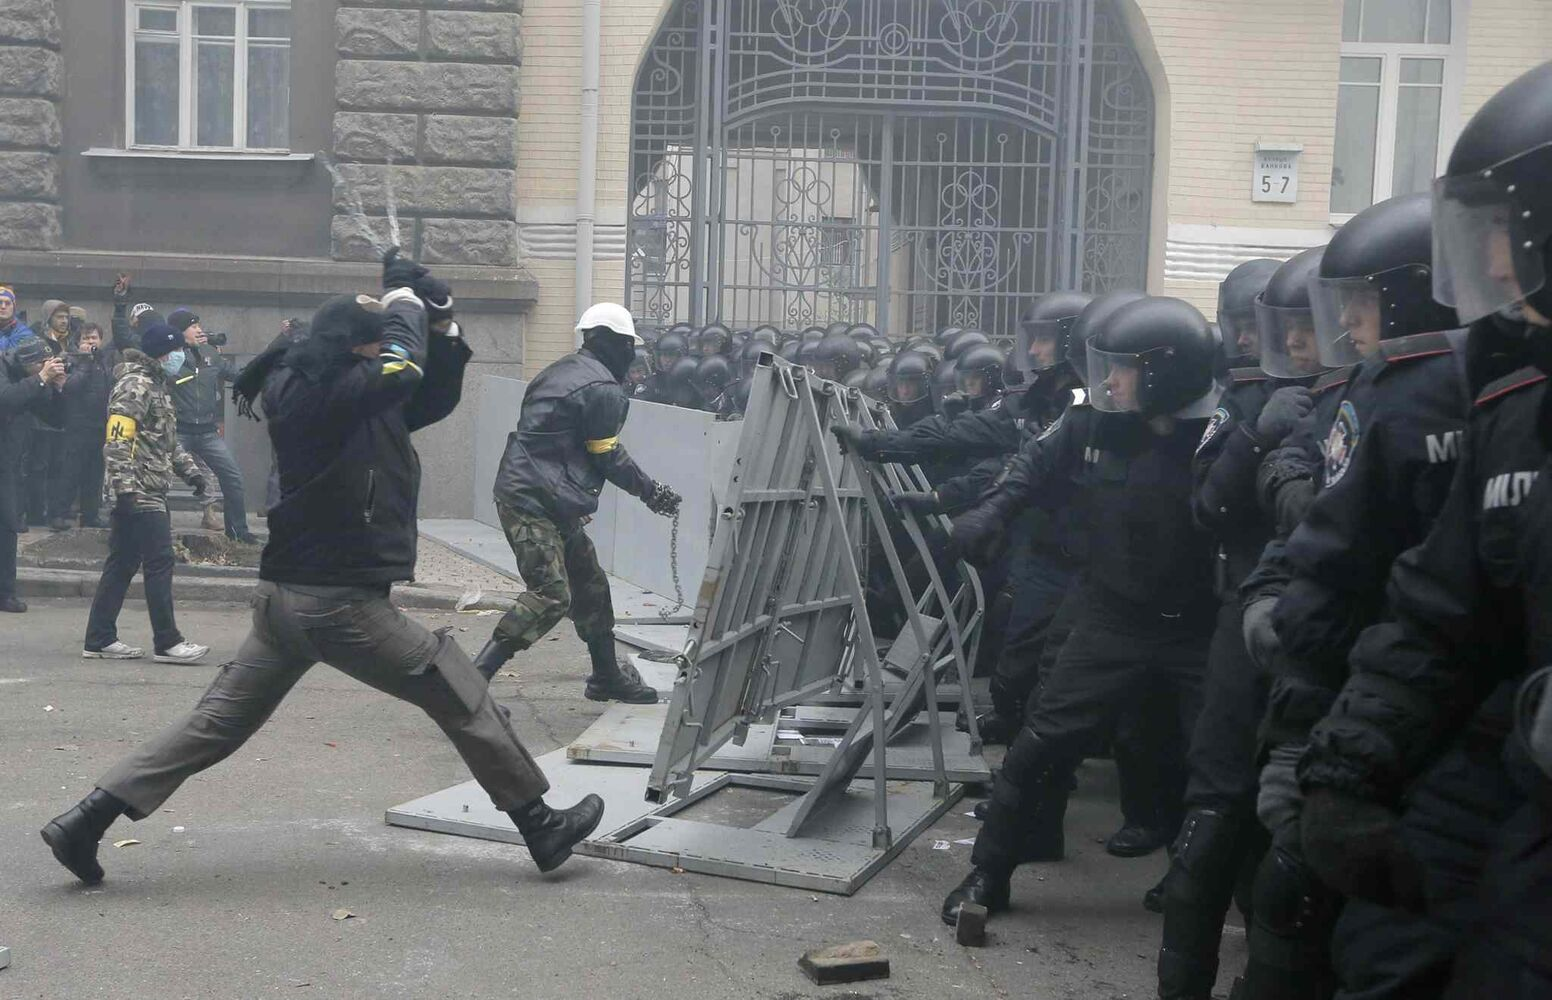 Protesters clash with police at the Presidential office in Kiev, Ukraine, on Sunday. As many as 100,000 demonstrators chased away police to rally in the center of Ukraine's capital on Sunday, defying a government ban on protests on Independence Square, in the biggest show of anger over the president's refusal to sign an agreement with the European Union.  (Efrem Lukatsky / The Associated Press)